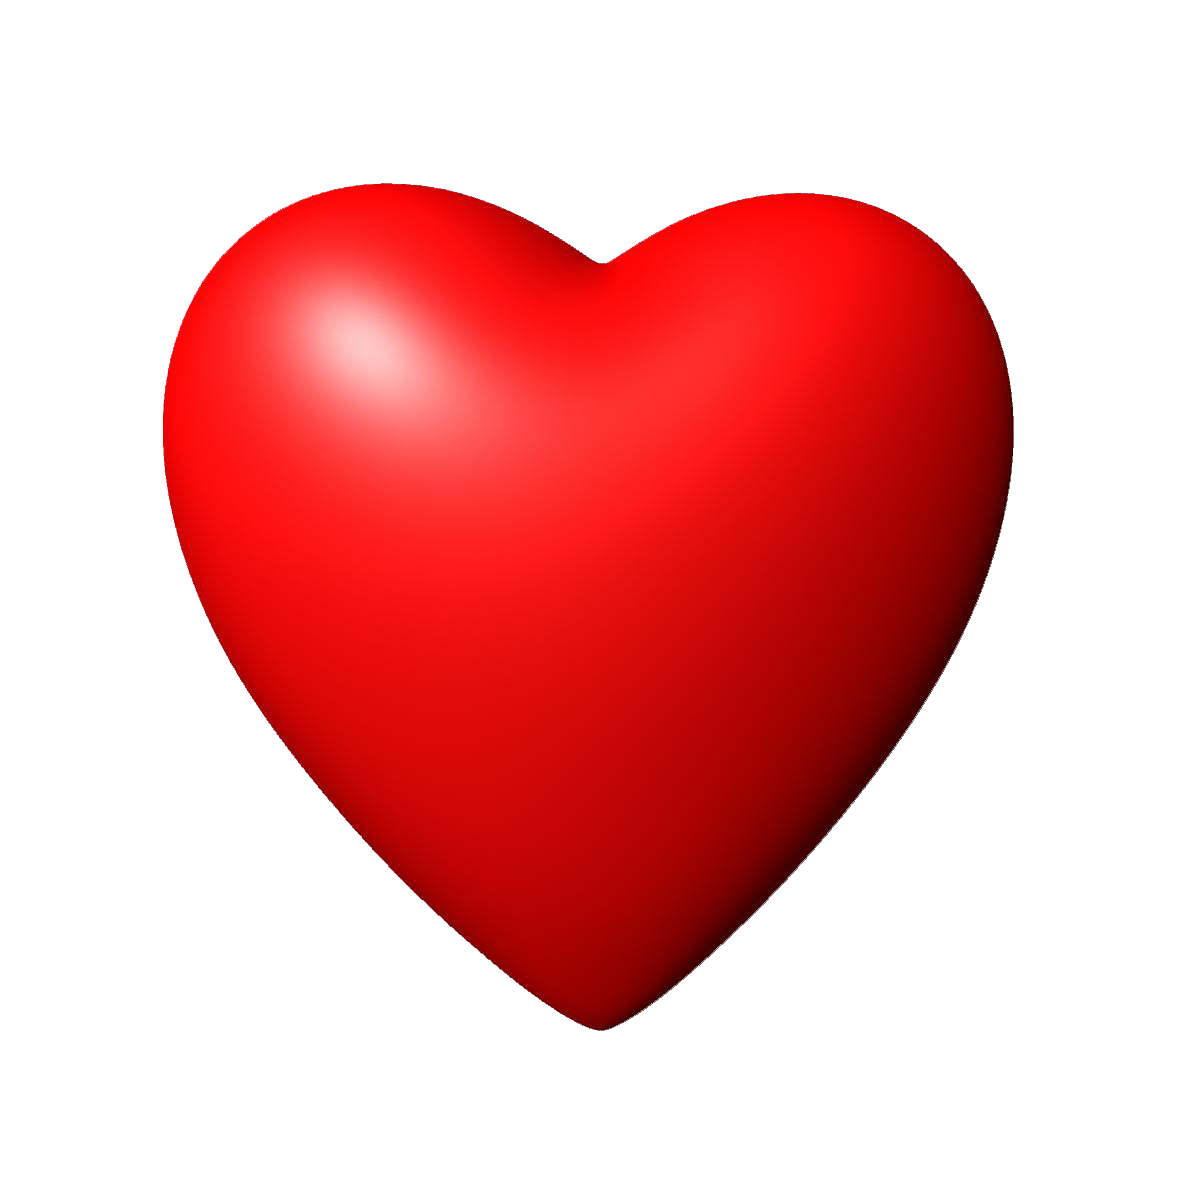 3d heart png. D red image